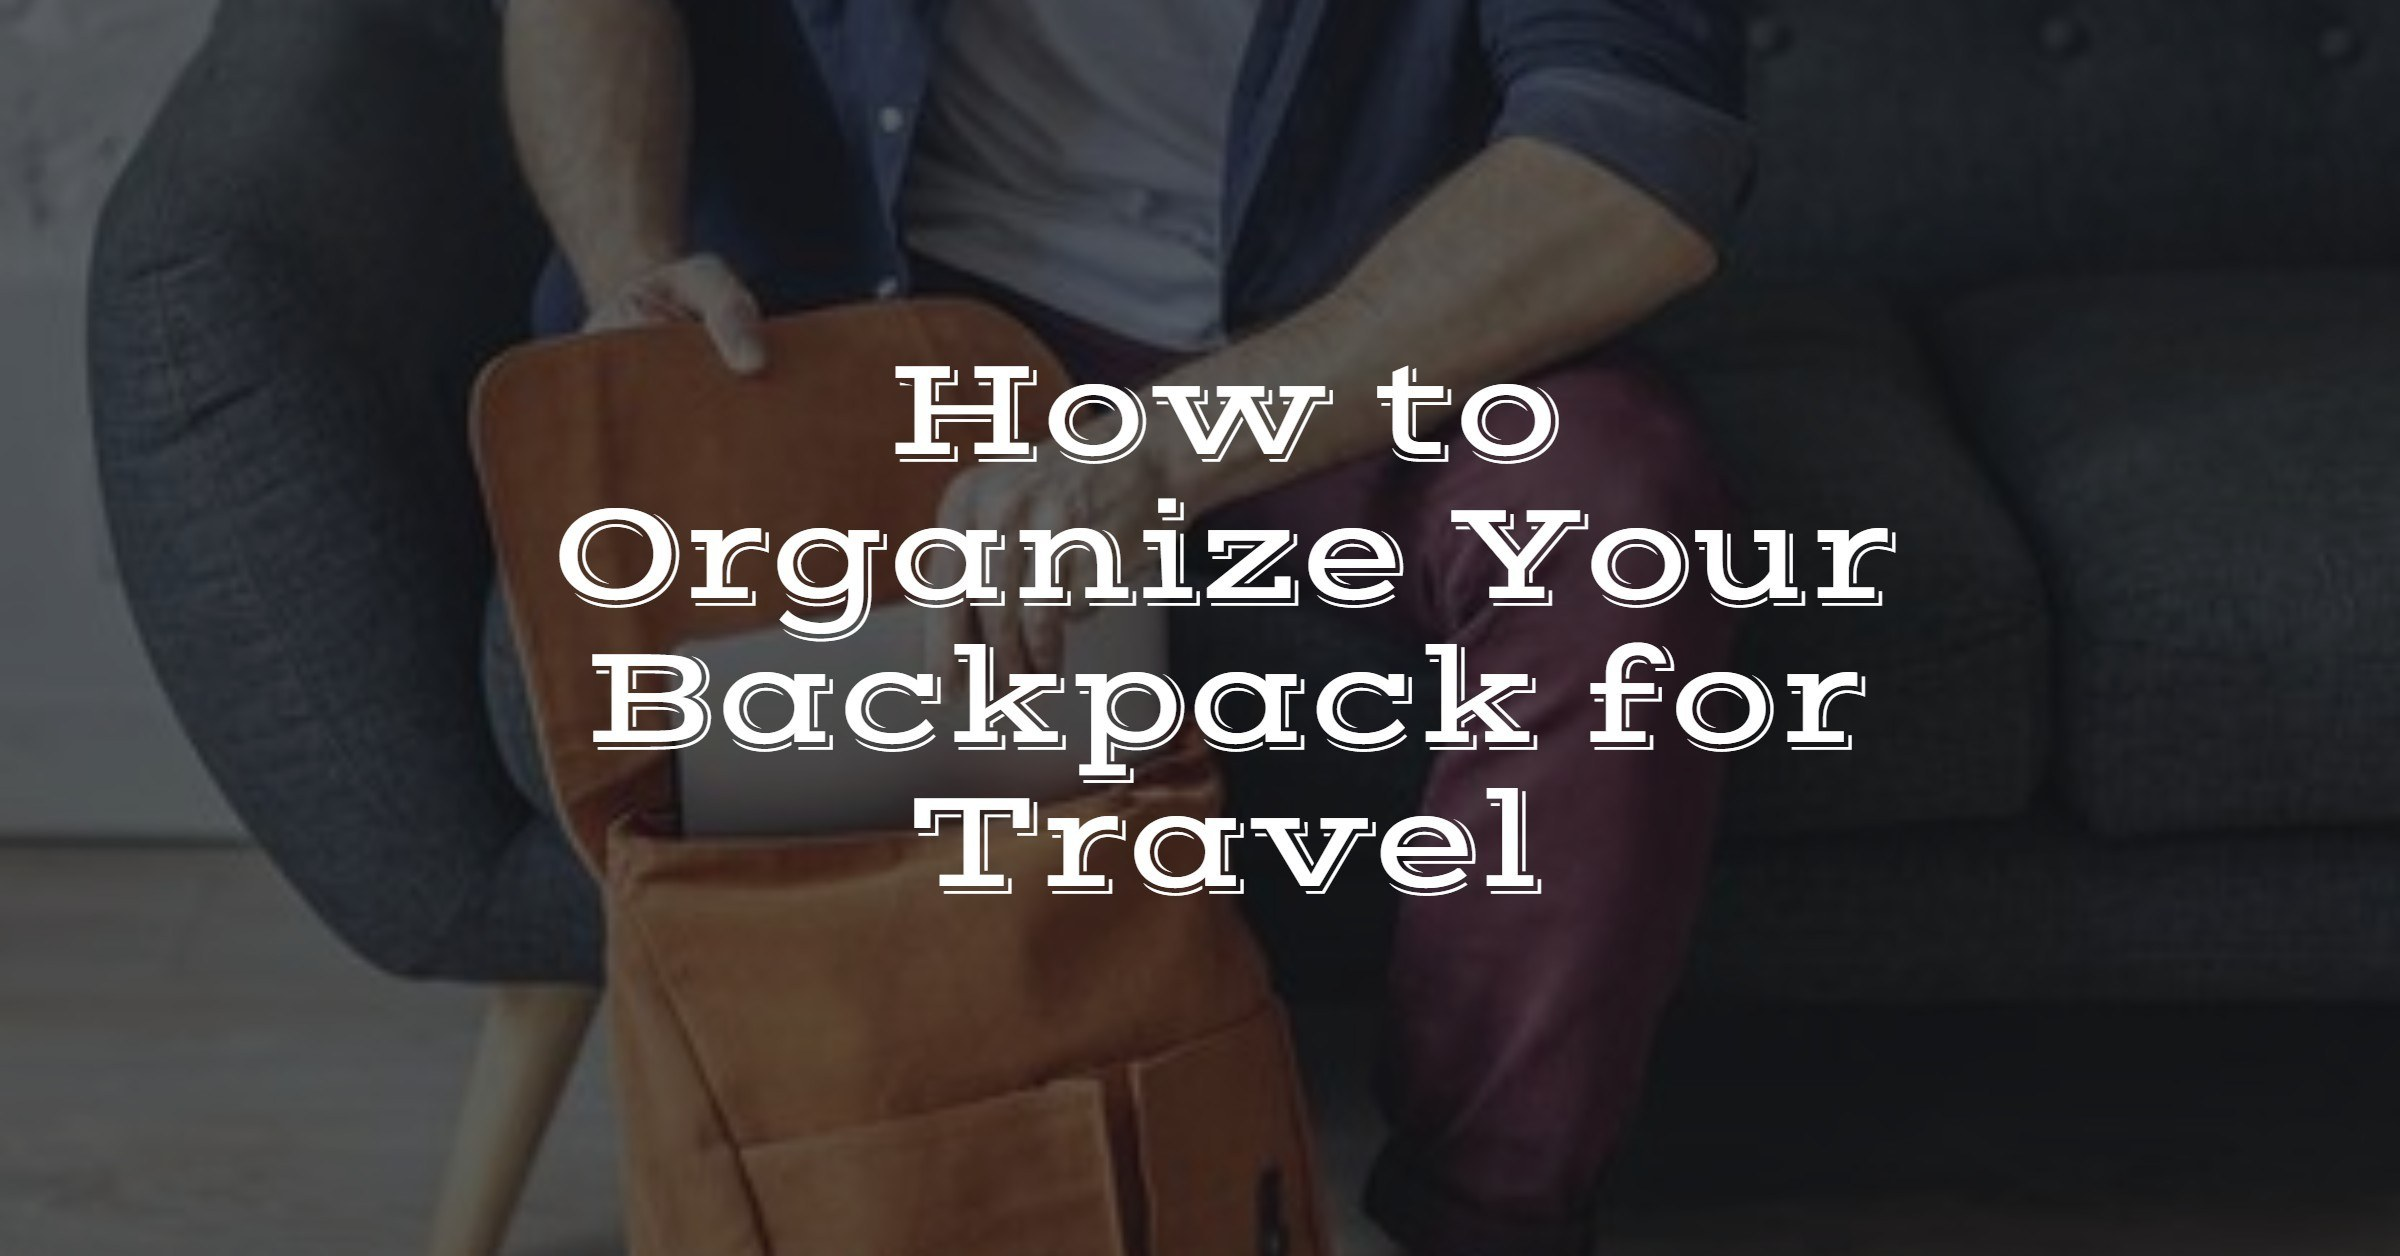 how to organize your backpack for travel